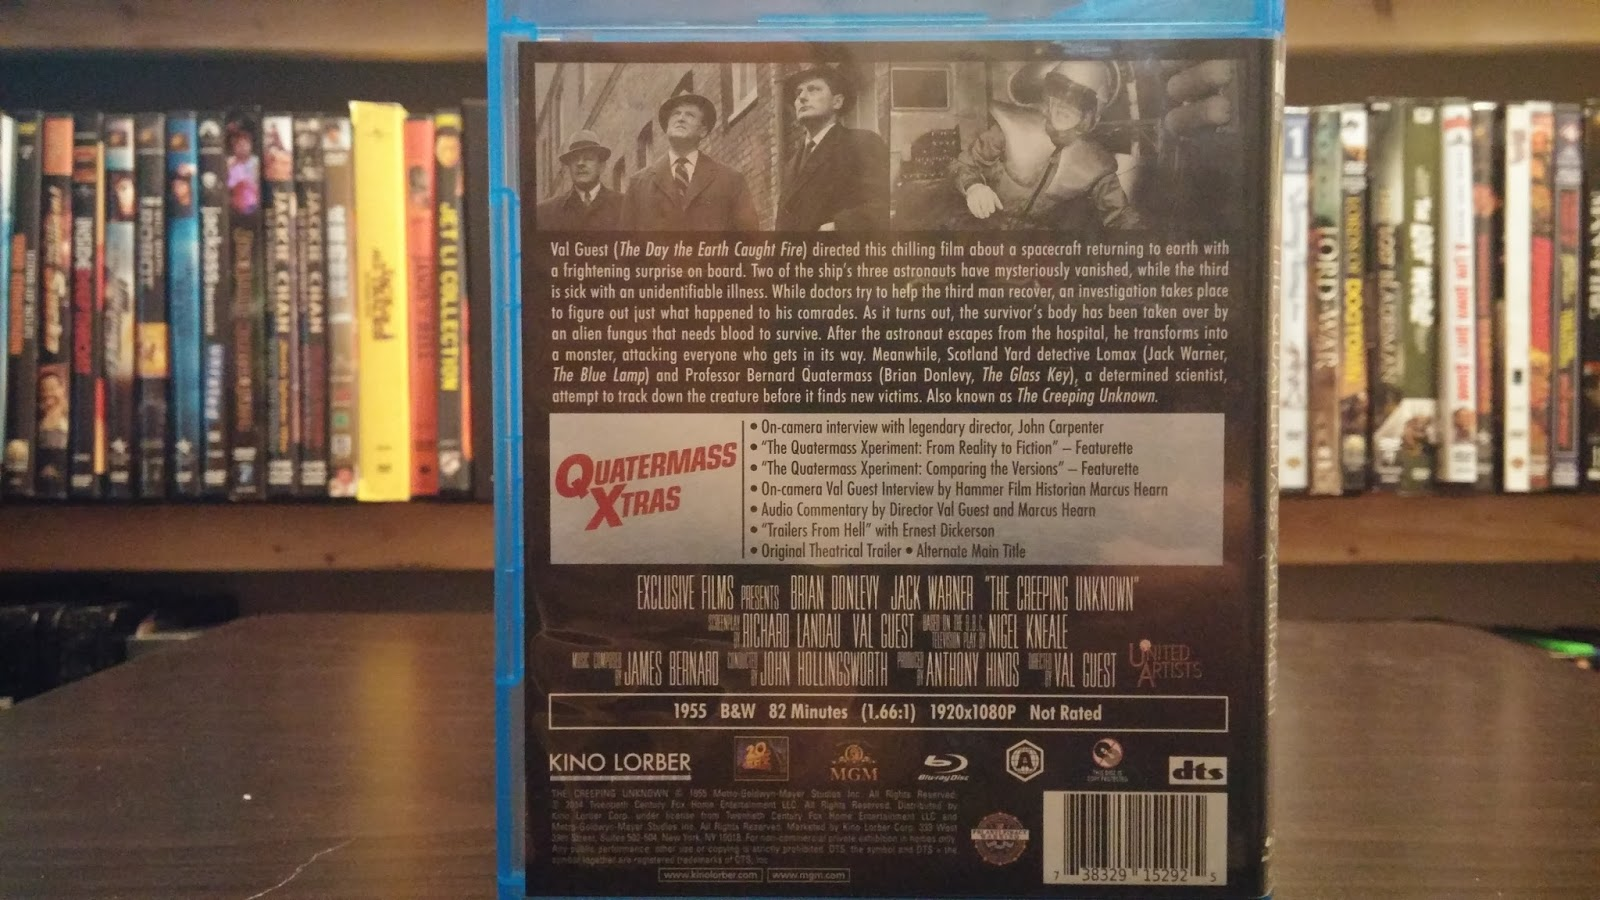 The Big Movie House: One Blu (ray) to Rule Them All: The Quatermass